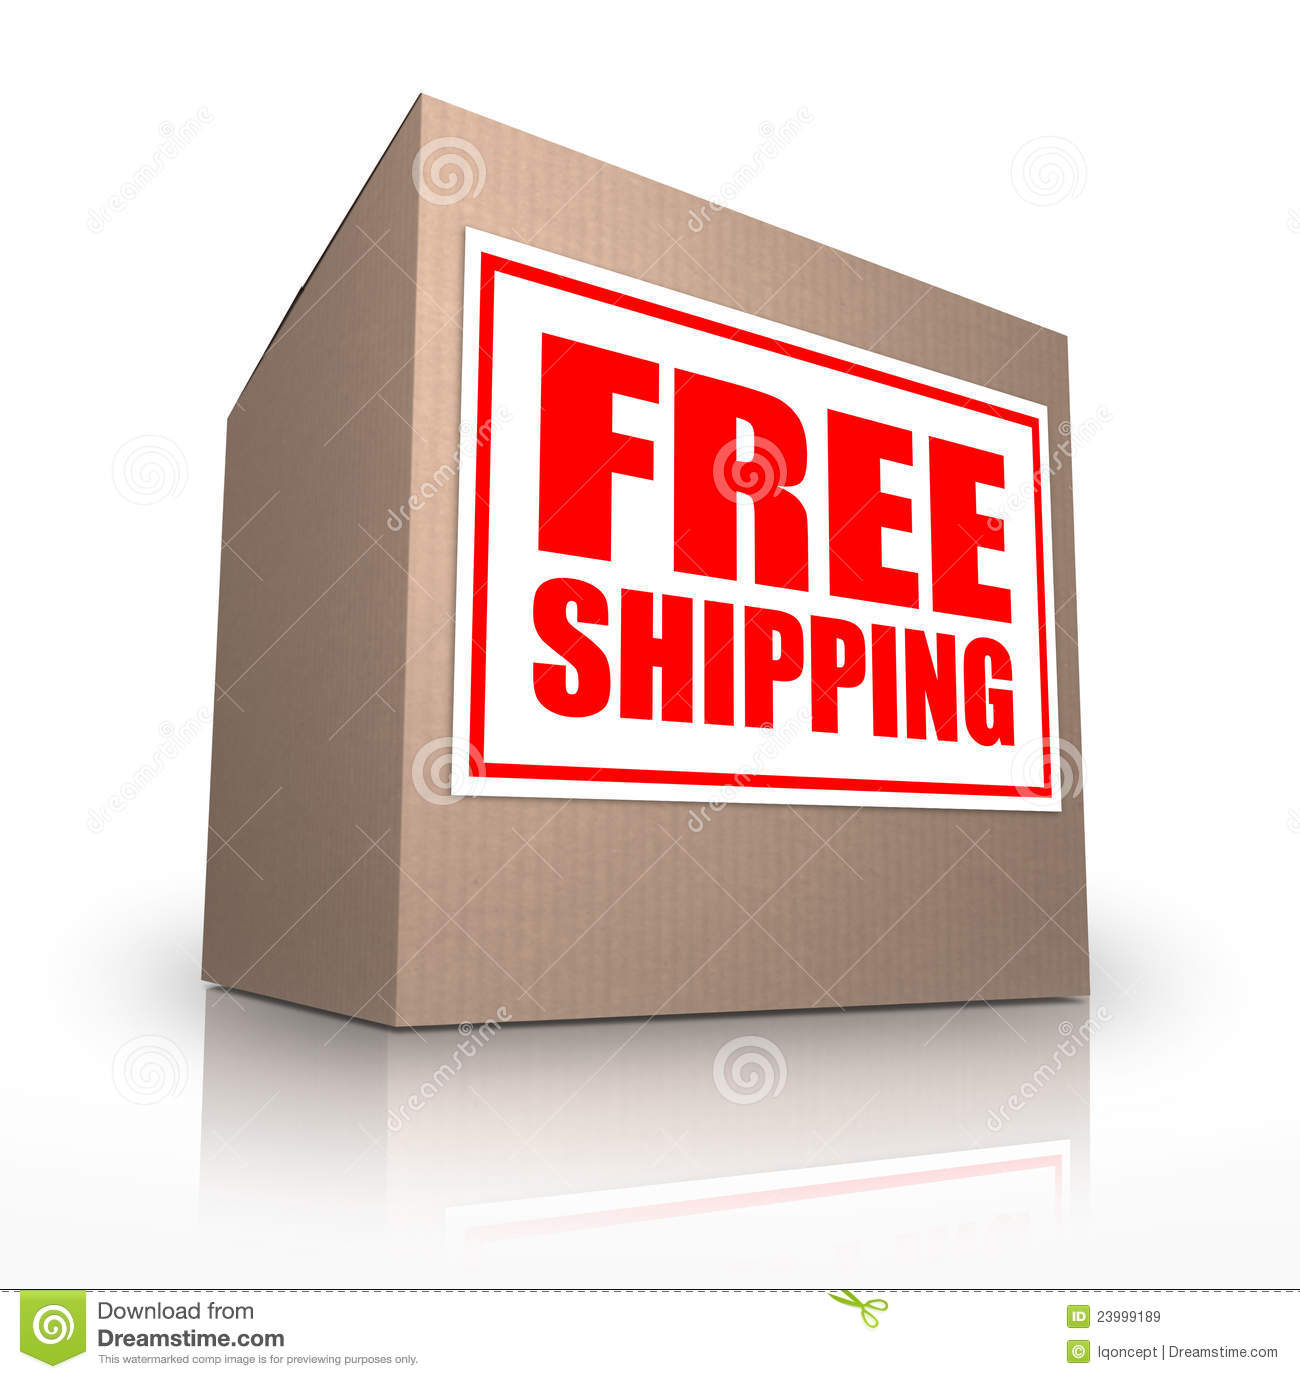 Free Shipping Cardboard Box Ship No Cost Royalty Free Stock Images ...: dreamstime.com/royalty-free-stock-images-free-shipping-cardboard...